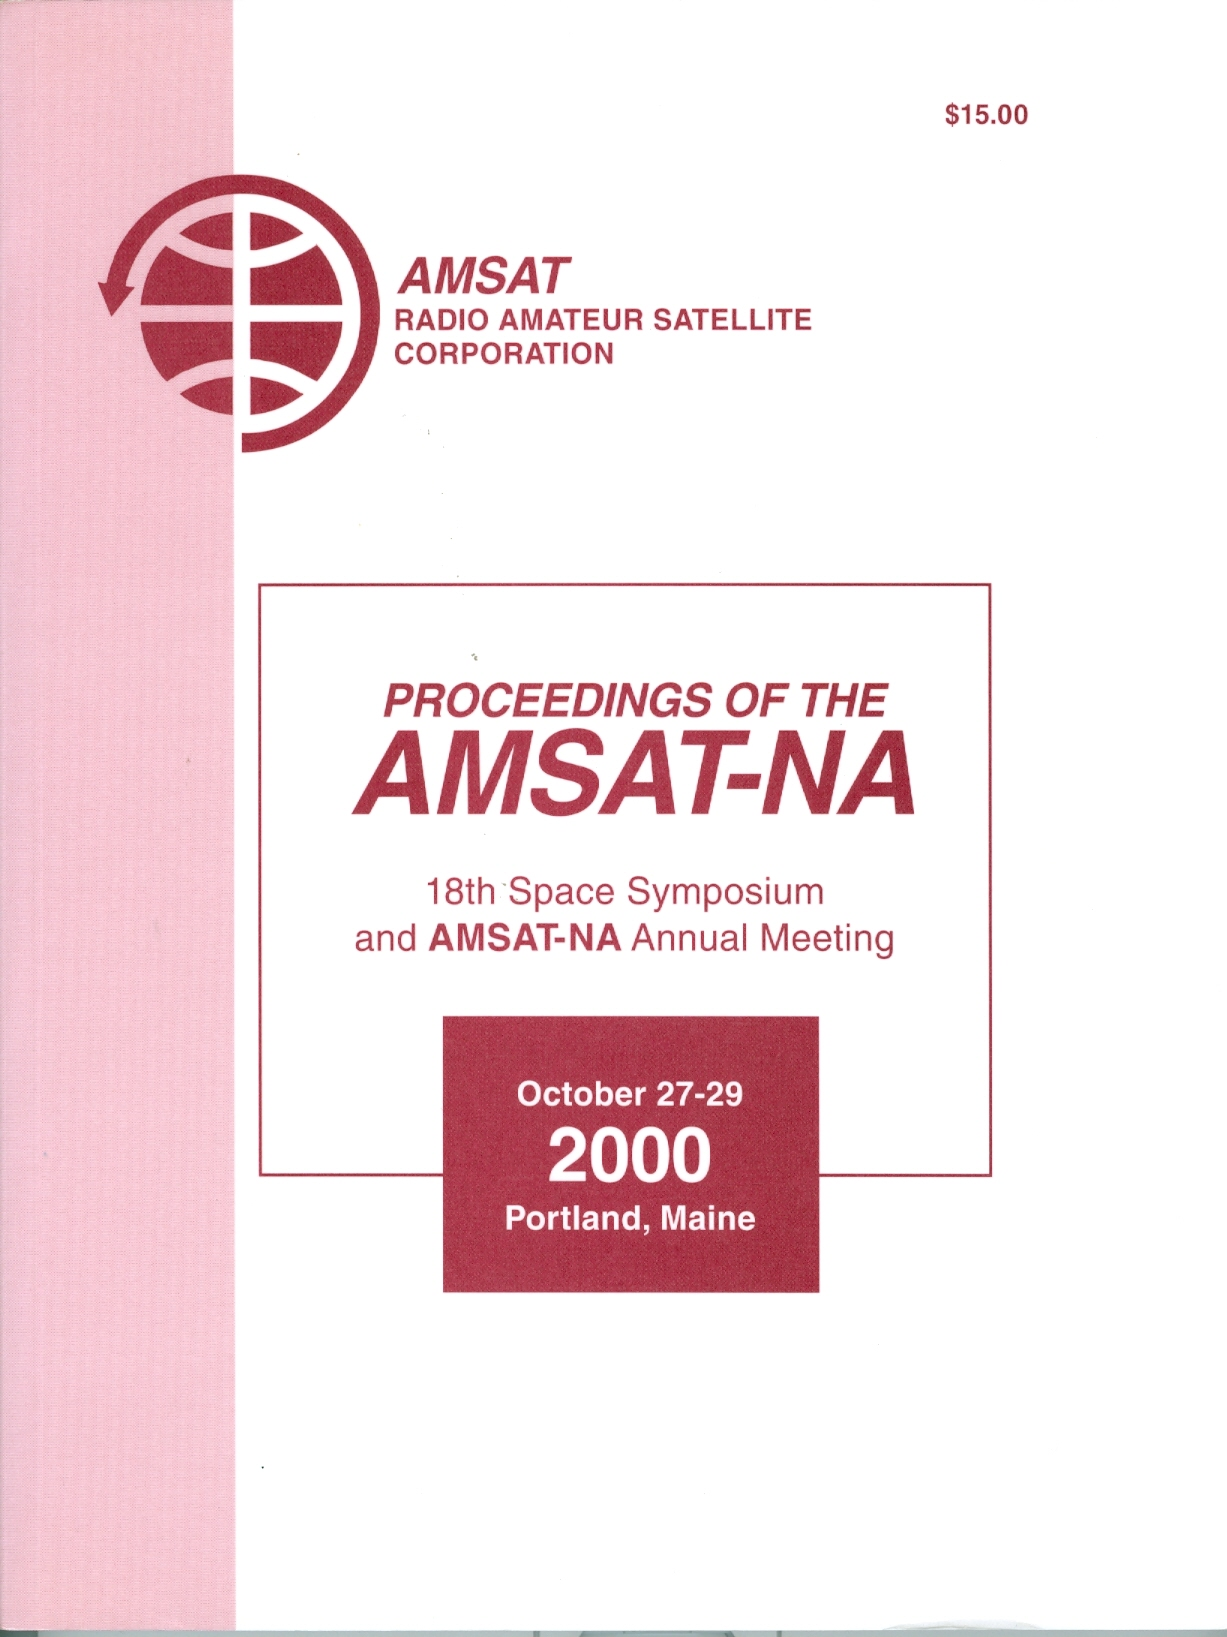 Proceedings of the AMSAT-NA 14th Space Symposium and AMSAT-NA Annual Meeting